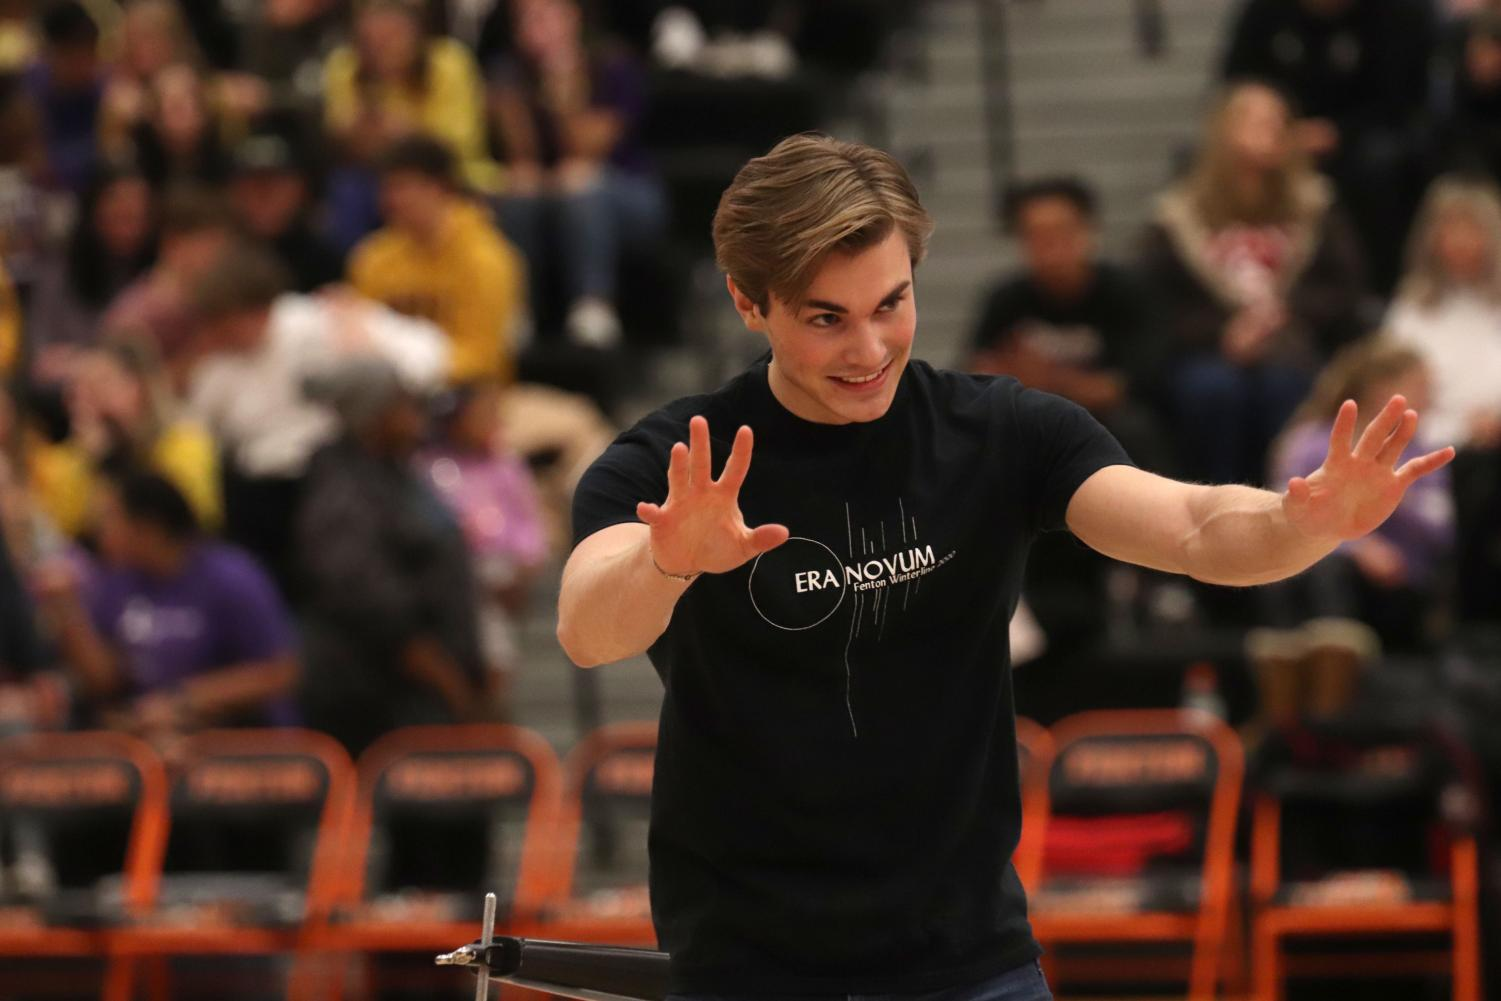 After performingwoth the drumline, senior Andrew Donar waves to the audience. The drumline perfomed during both the girls and boys varsity basketball games on Jan. 31.